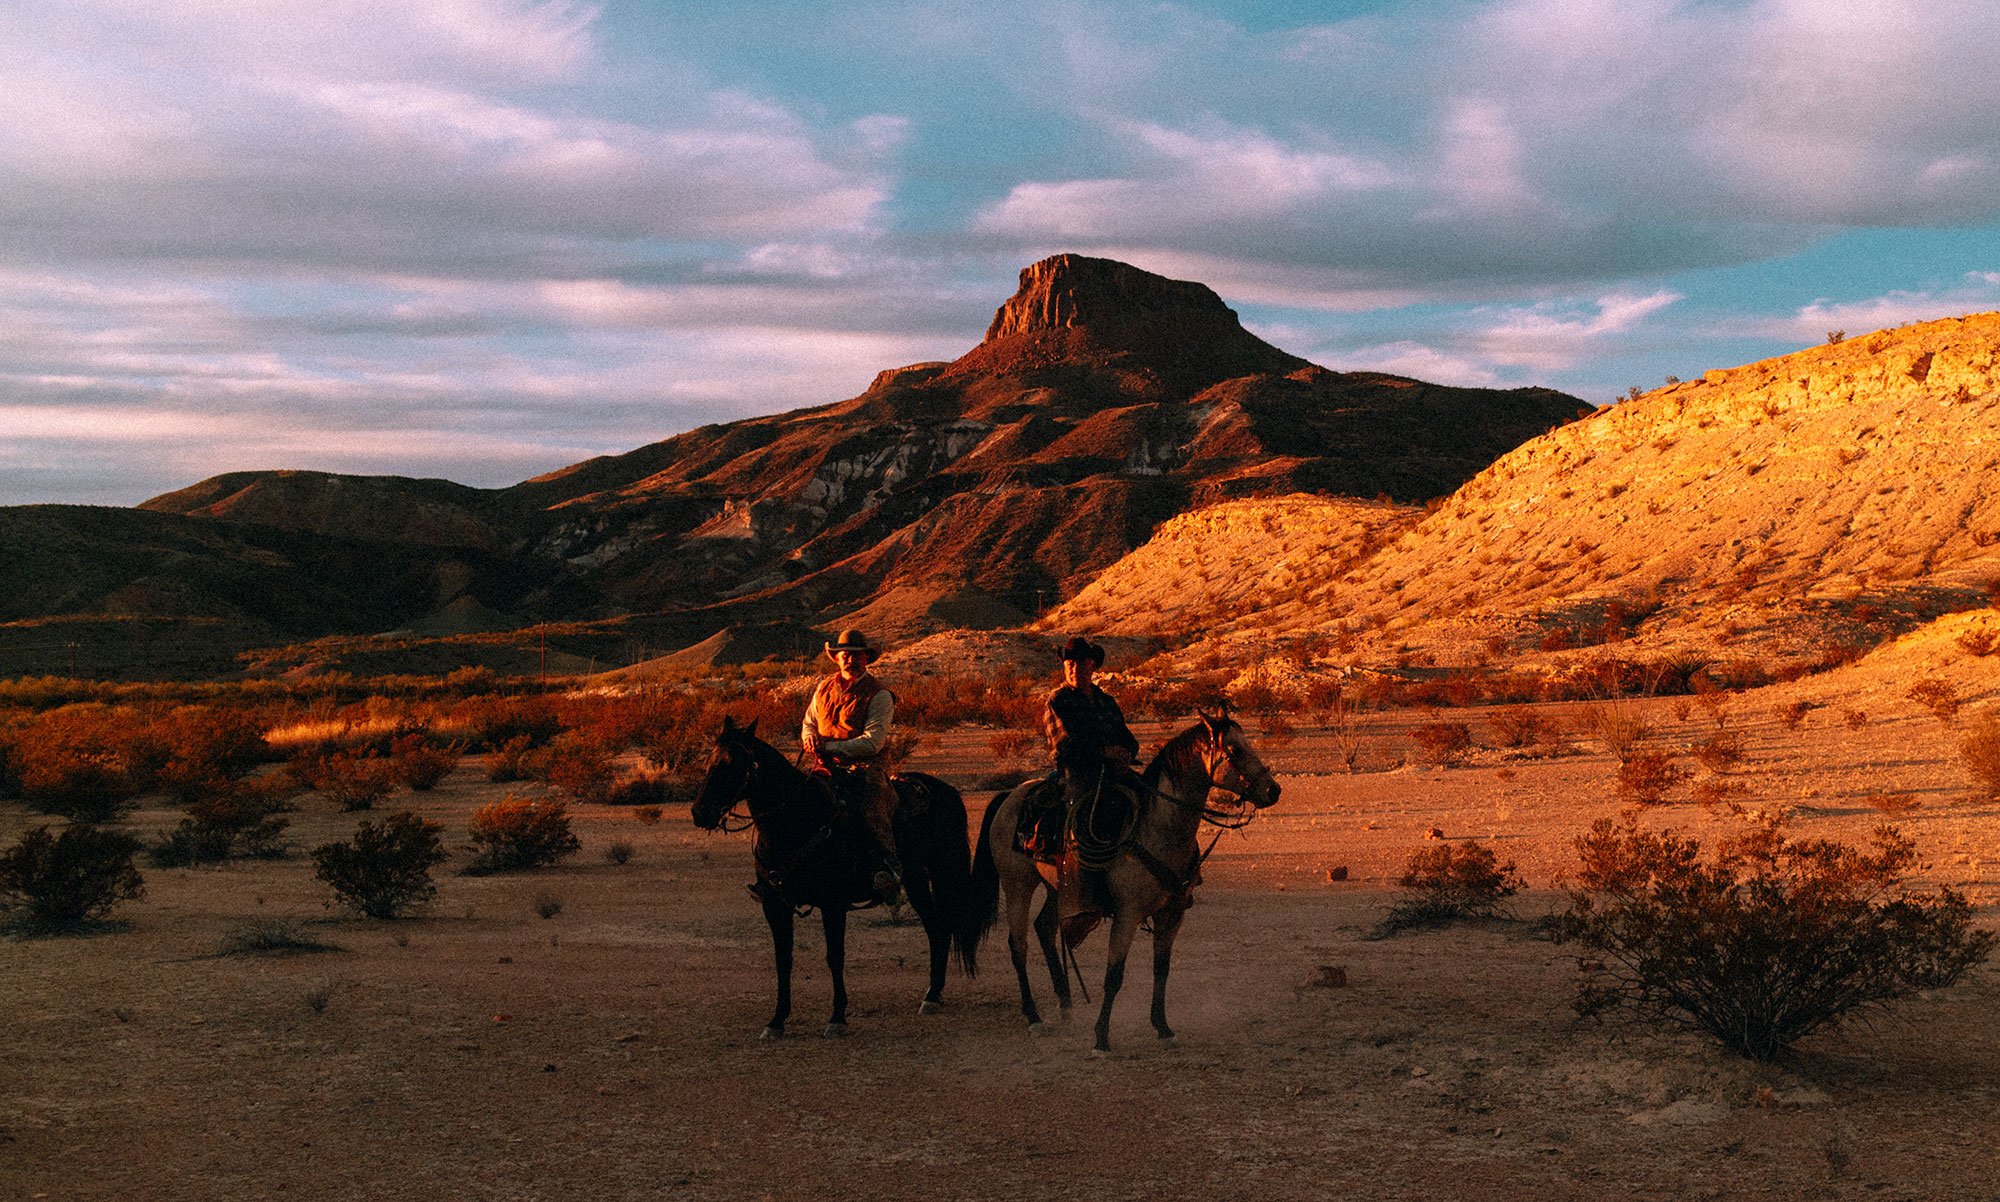 Sunset Horseback Riding in Lajitas, Texas – Big Bend Ranch State Park / Texas Roadtrip Travel Guide & Diary by iHeartAlice.com - Travel, Lifestyle, Food & Fashionblog by Alice M. Huynh / Travel Texas